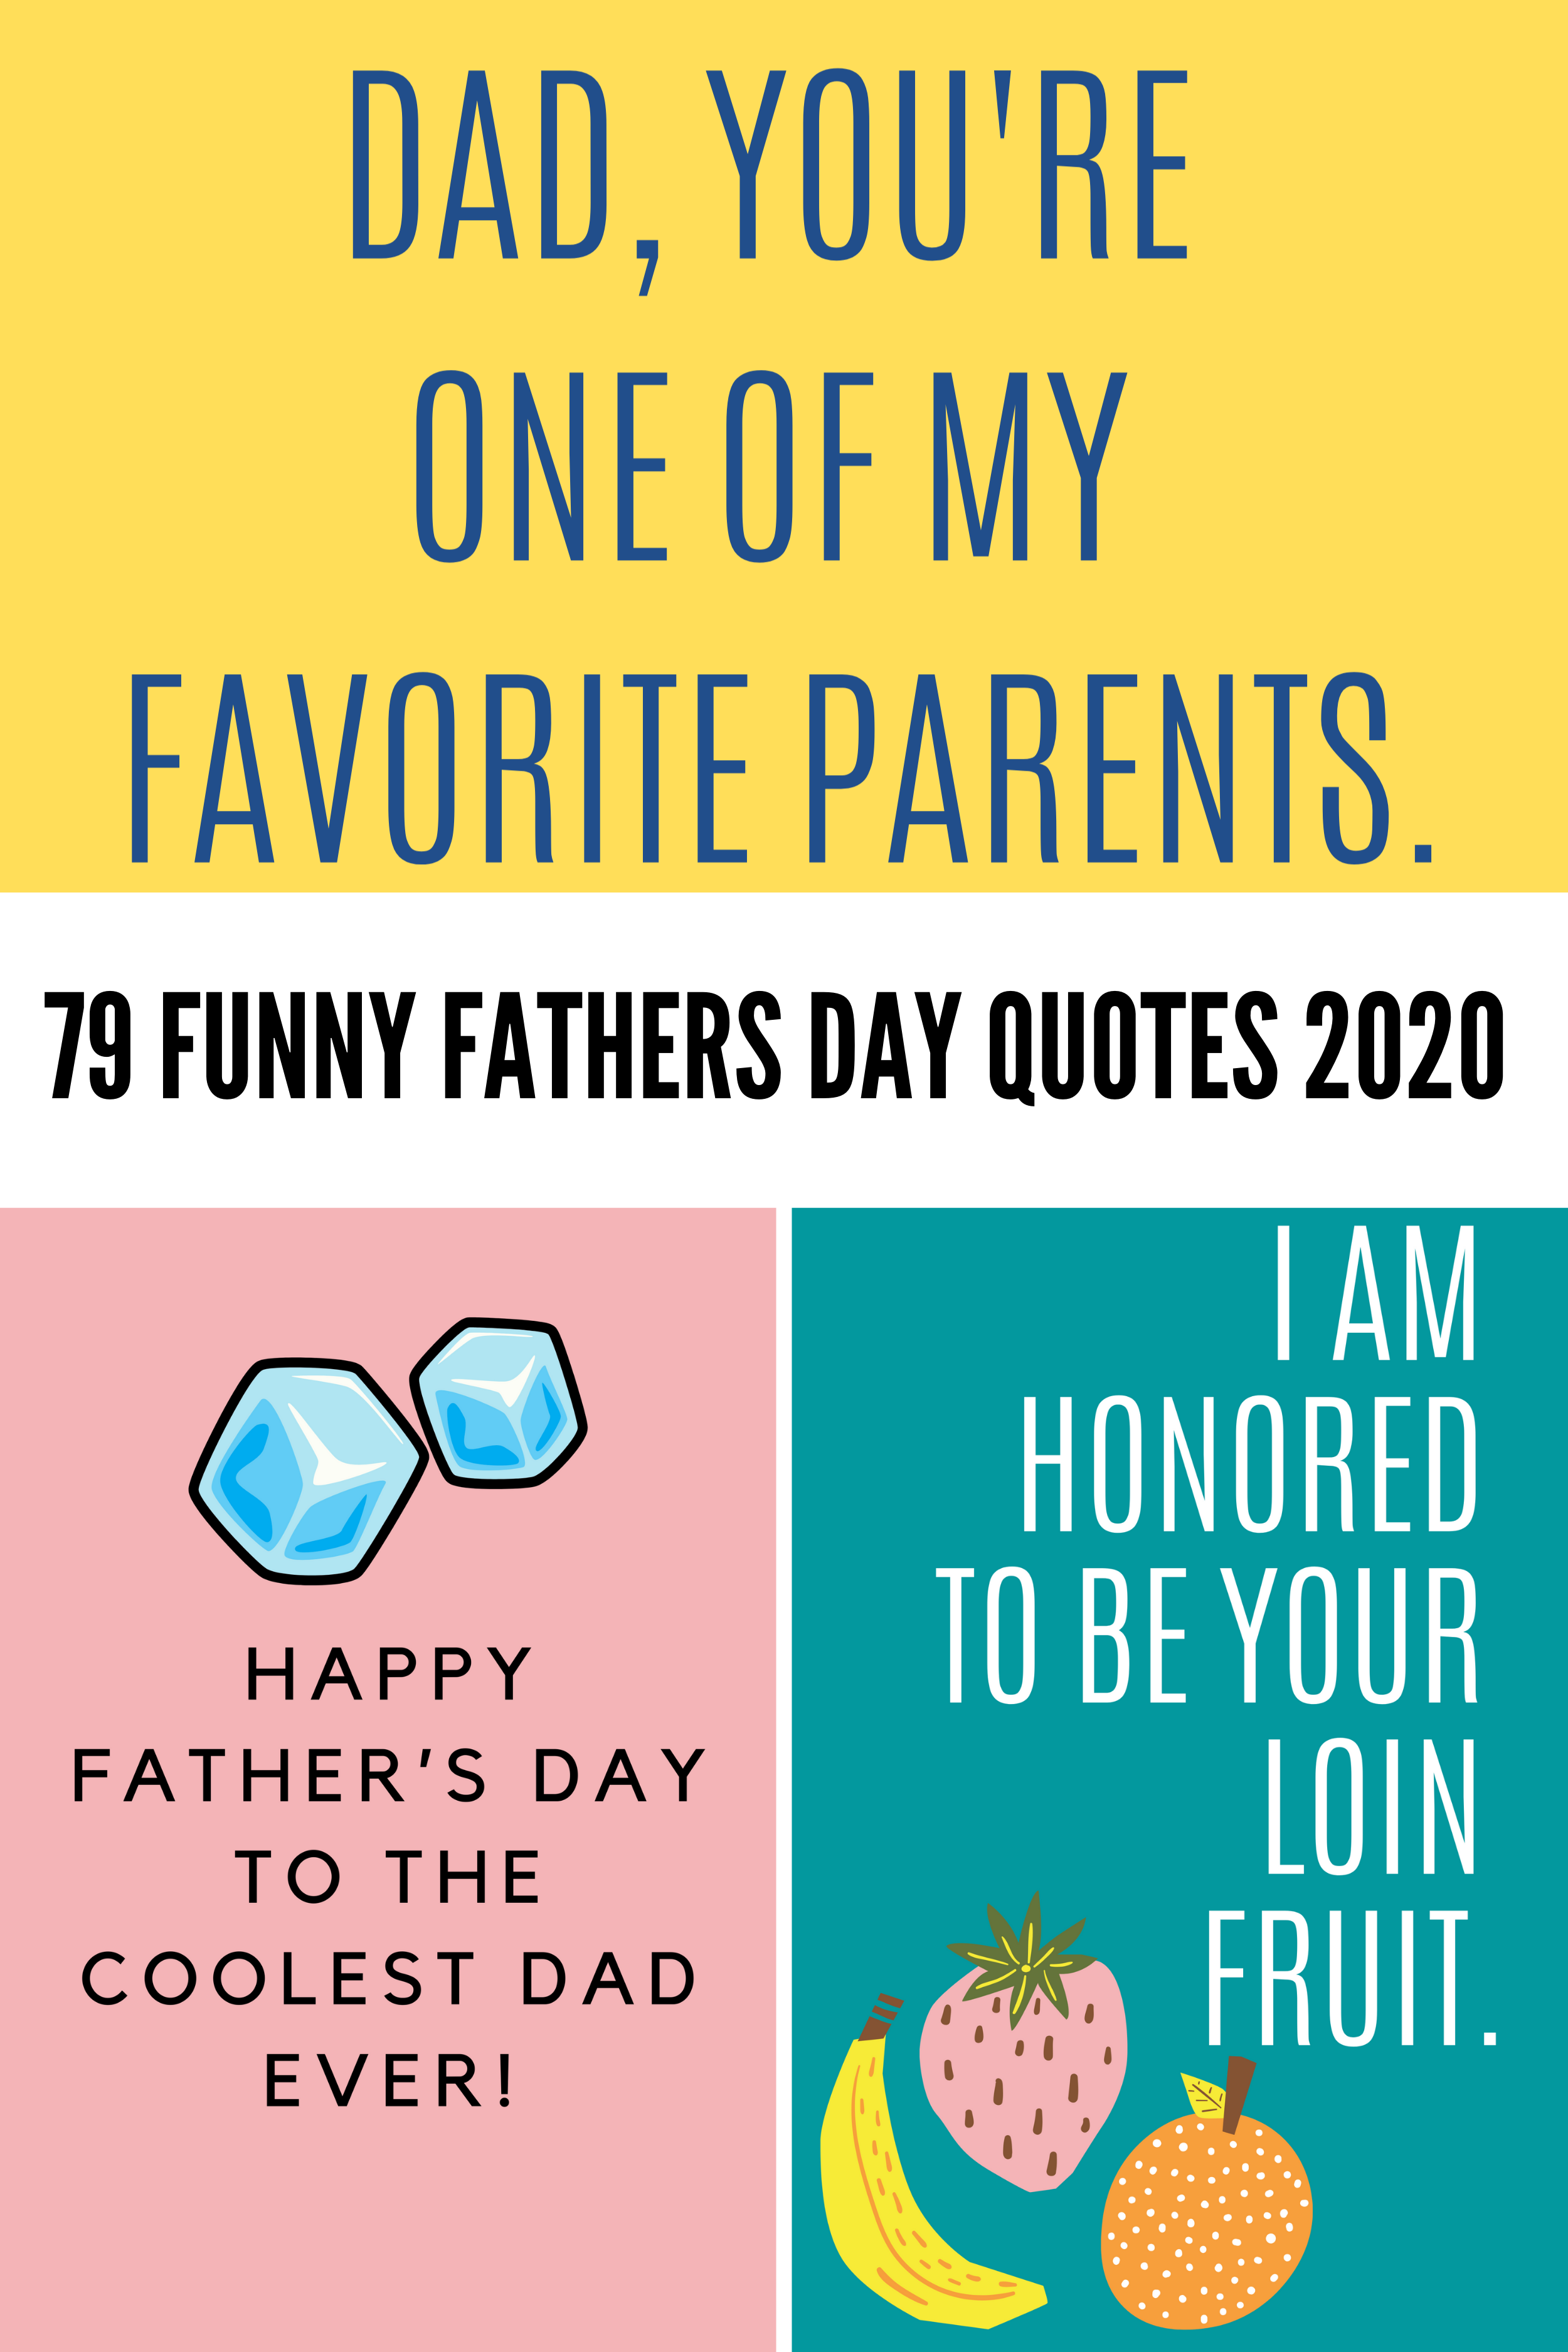 Funny Fathers Day Quotes 2020